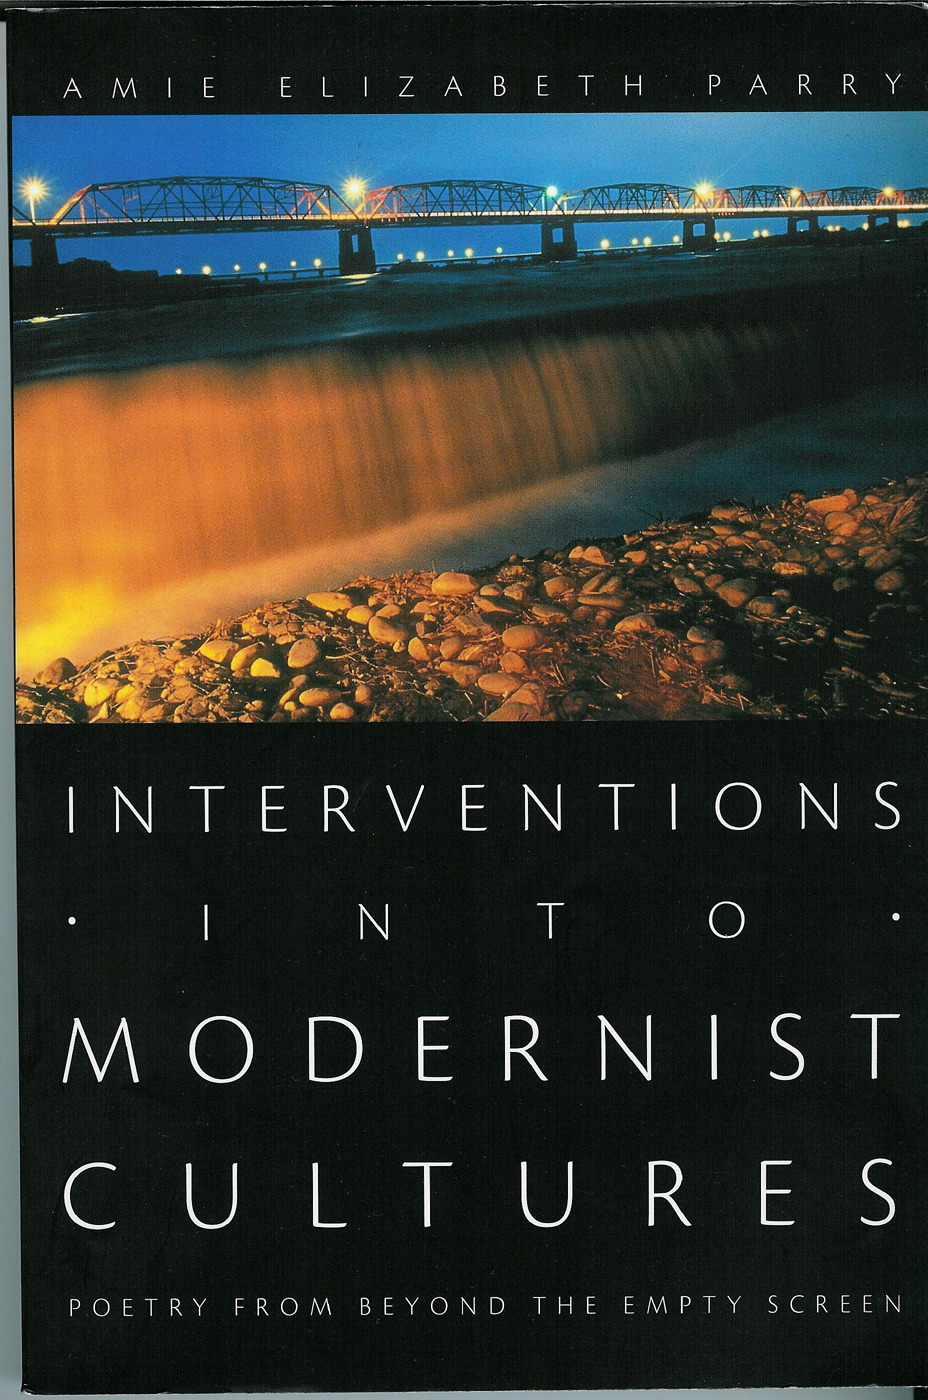 Interventions Into Modernist Cultures: Poetry From Beyond The Empty Screen